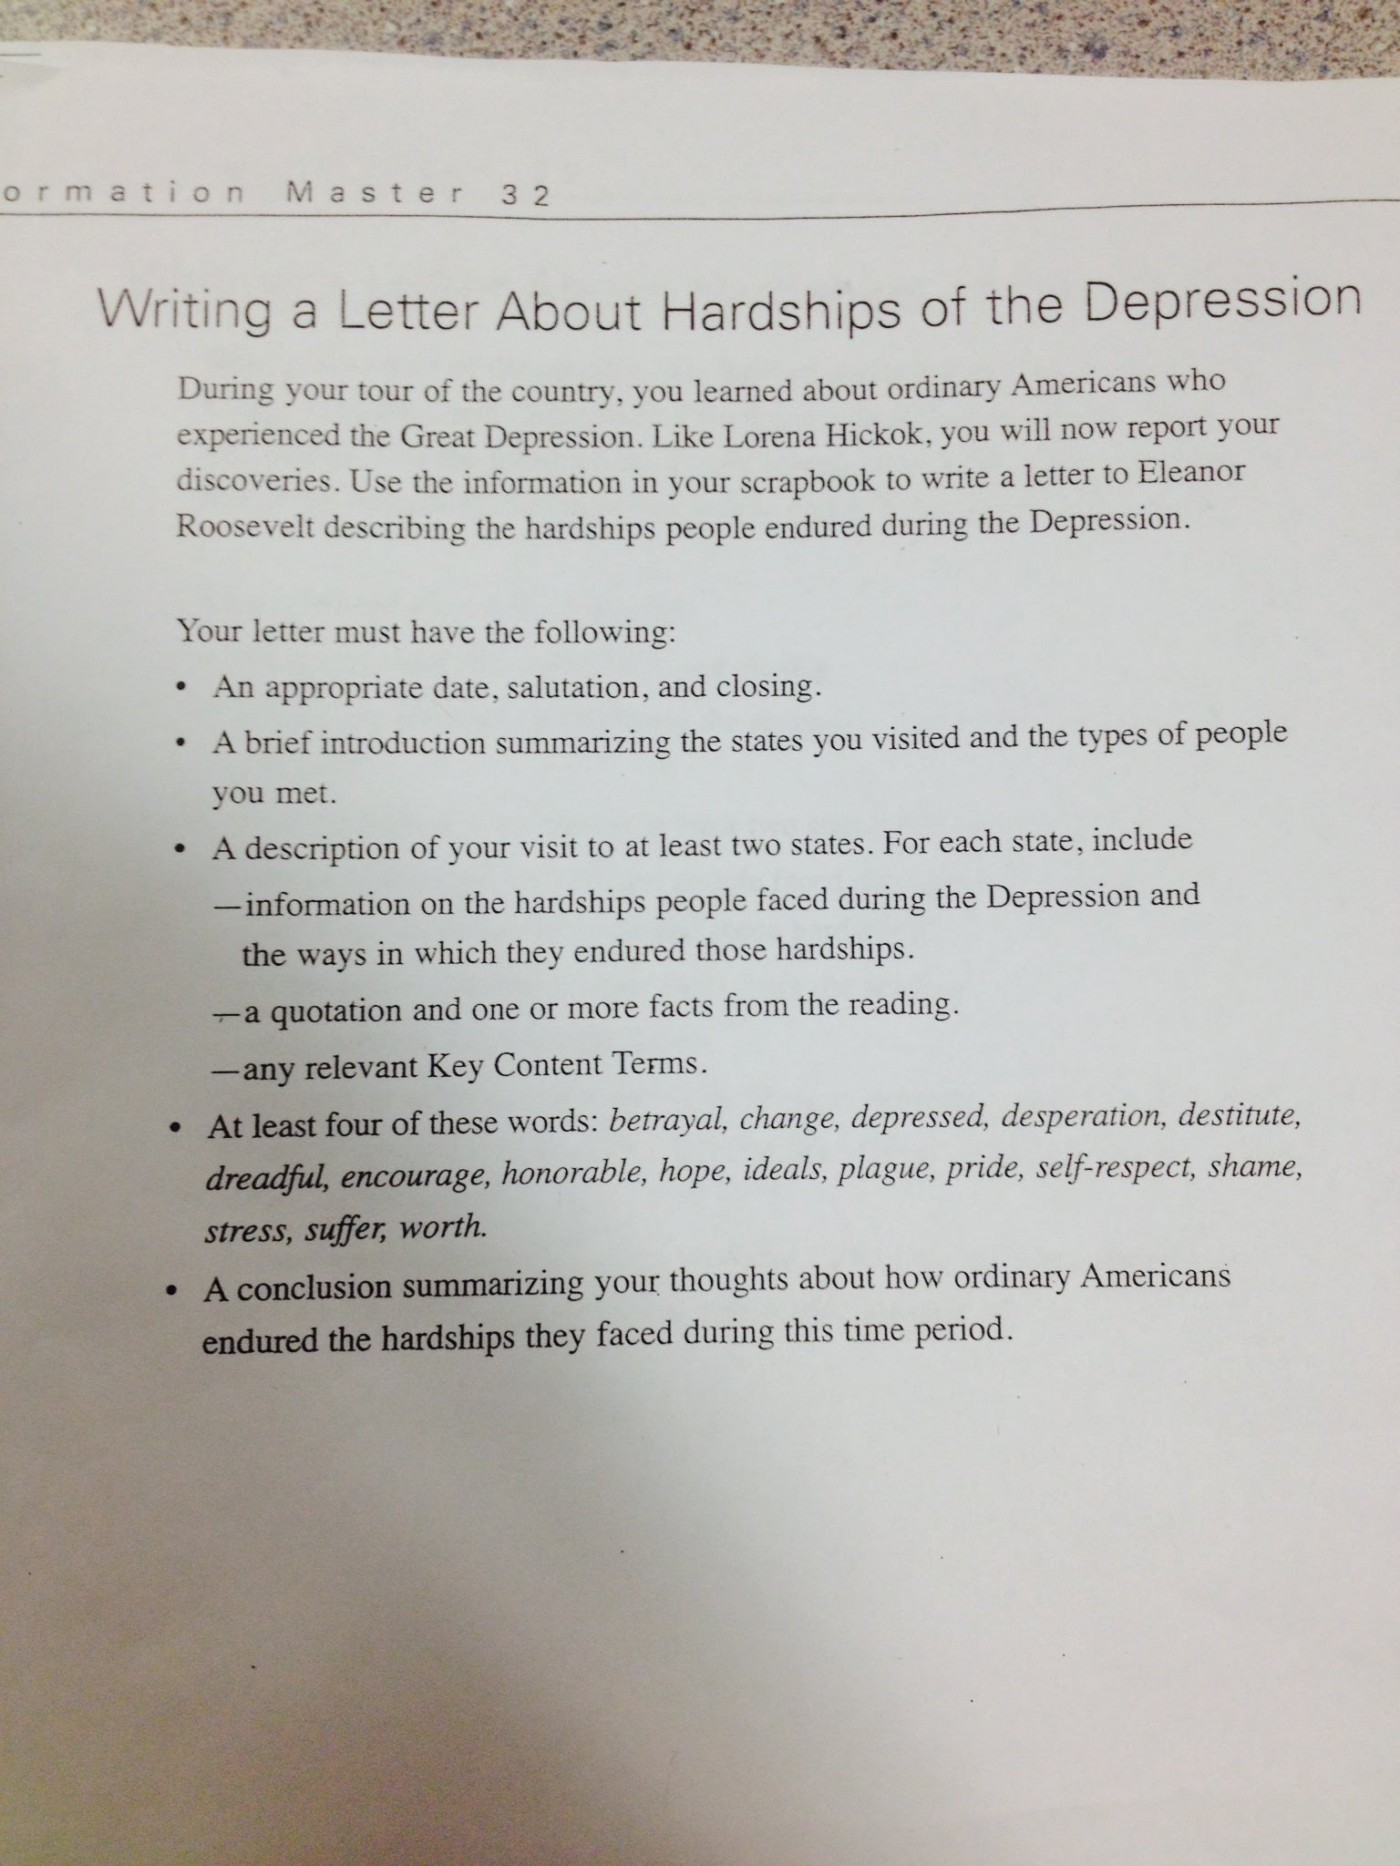 012 Letter Conclusion Of The Great Depression Essay Amazing 1400